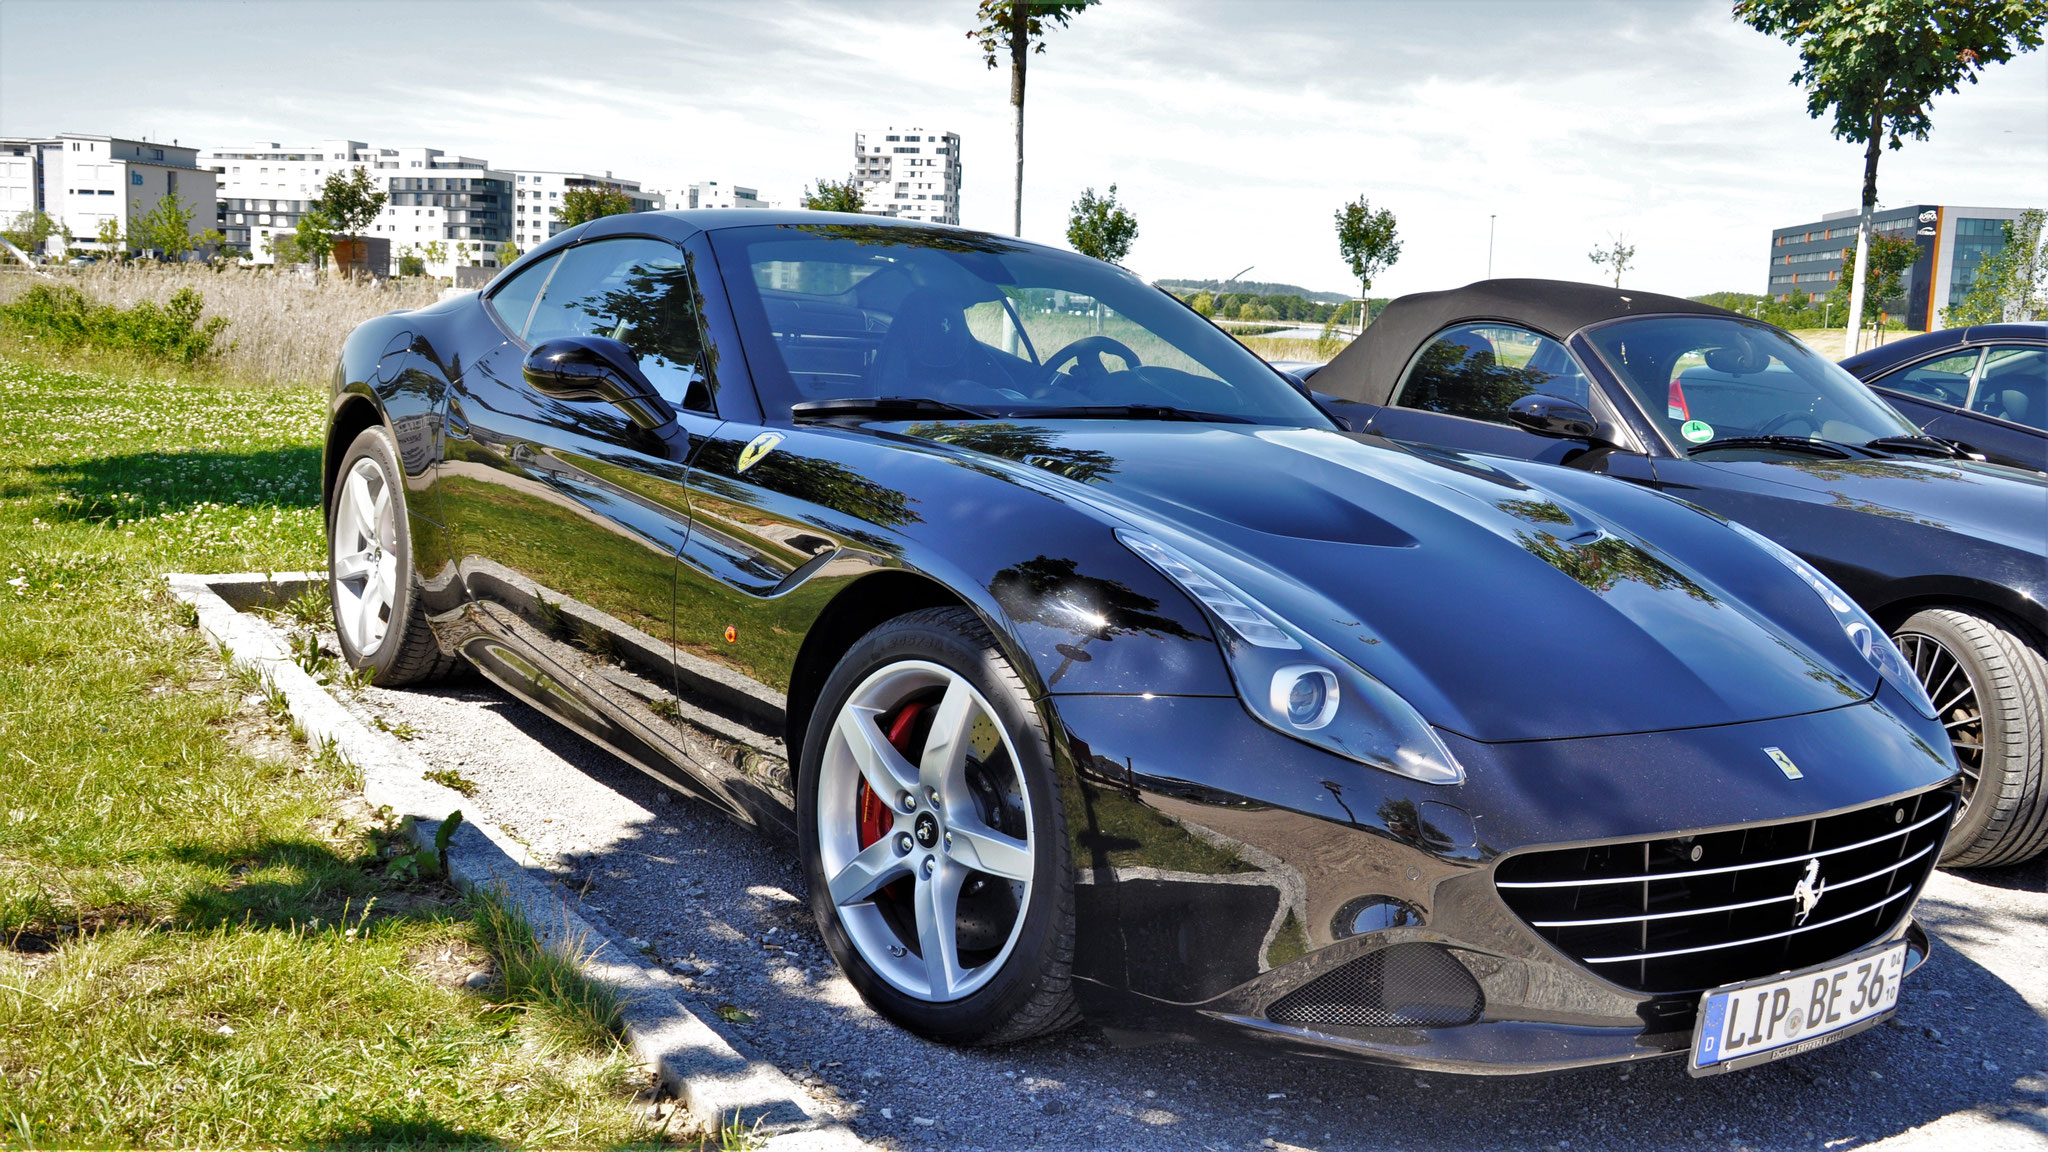 Ferrari California T - LIP-BE-36